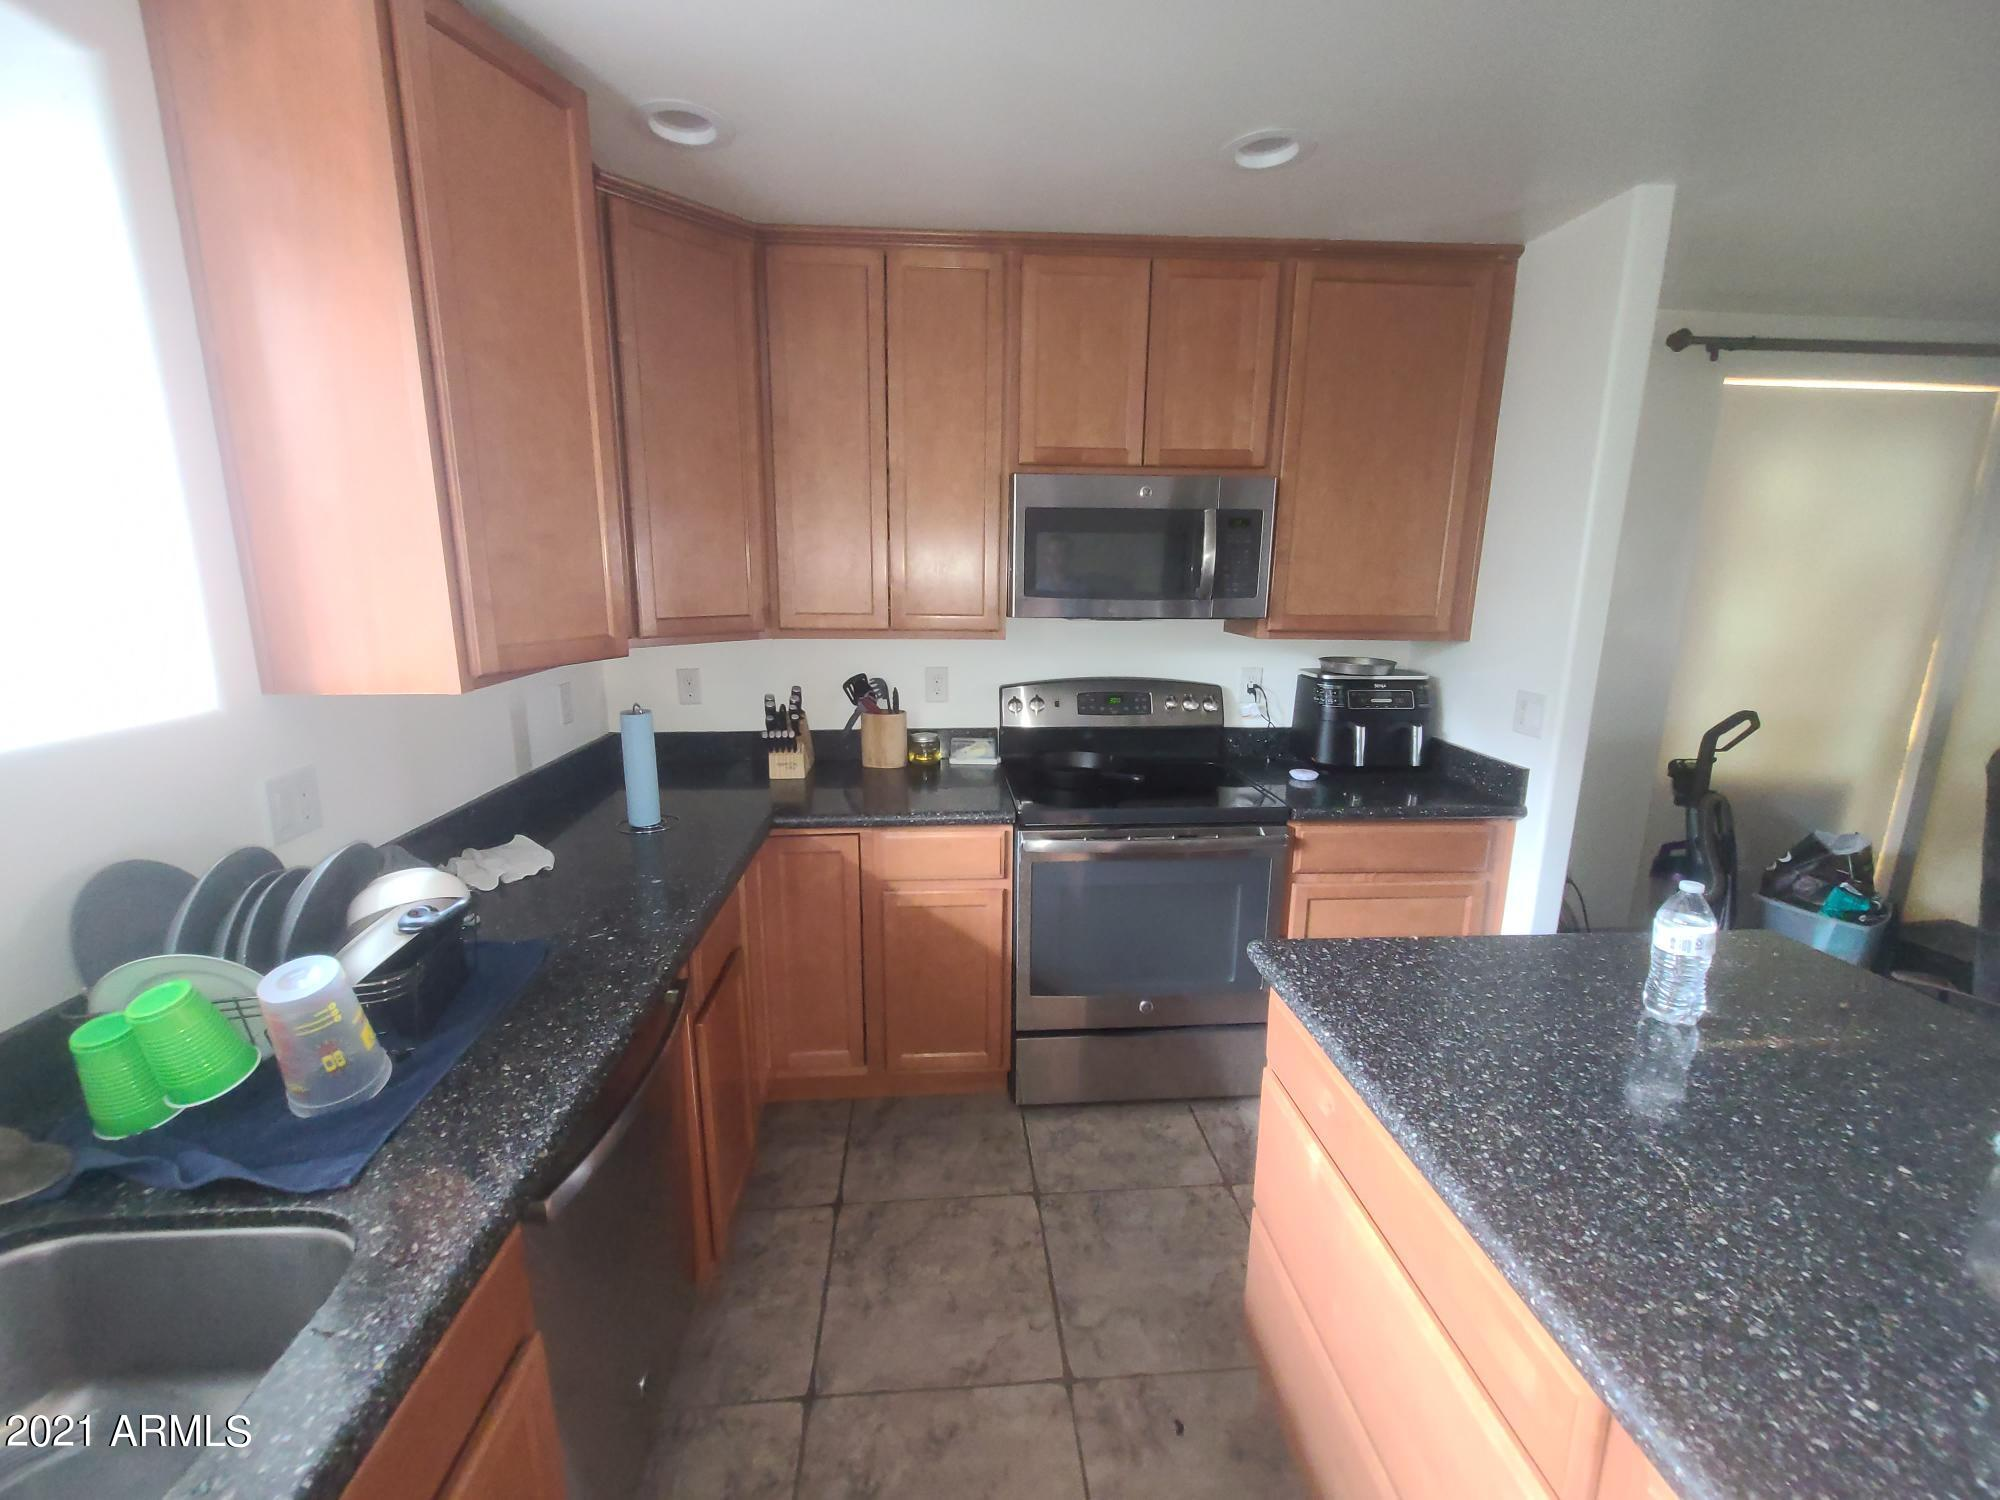 3-Bedroom House In North Mountain